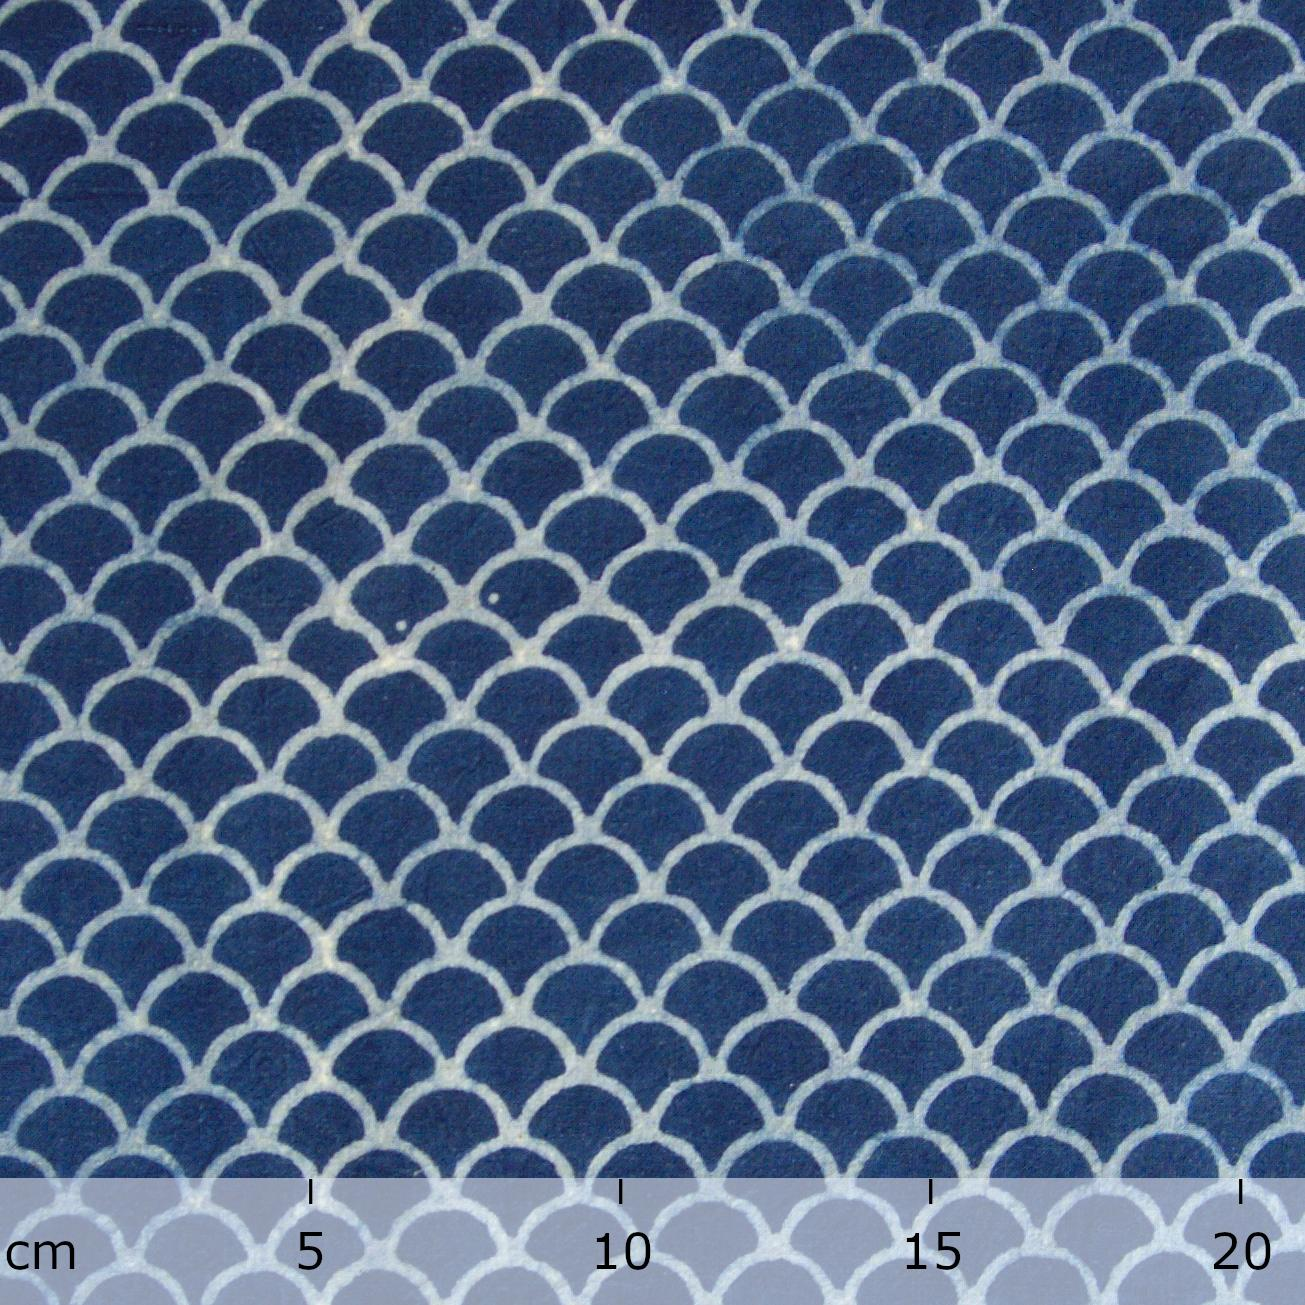 100% Block-Printed Cotton Fabric From India- Ajrak - Indigo White Resist Scales Print - Ruler